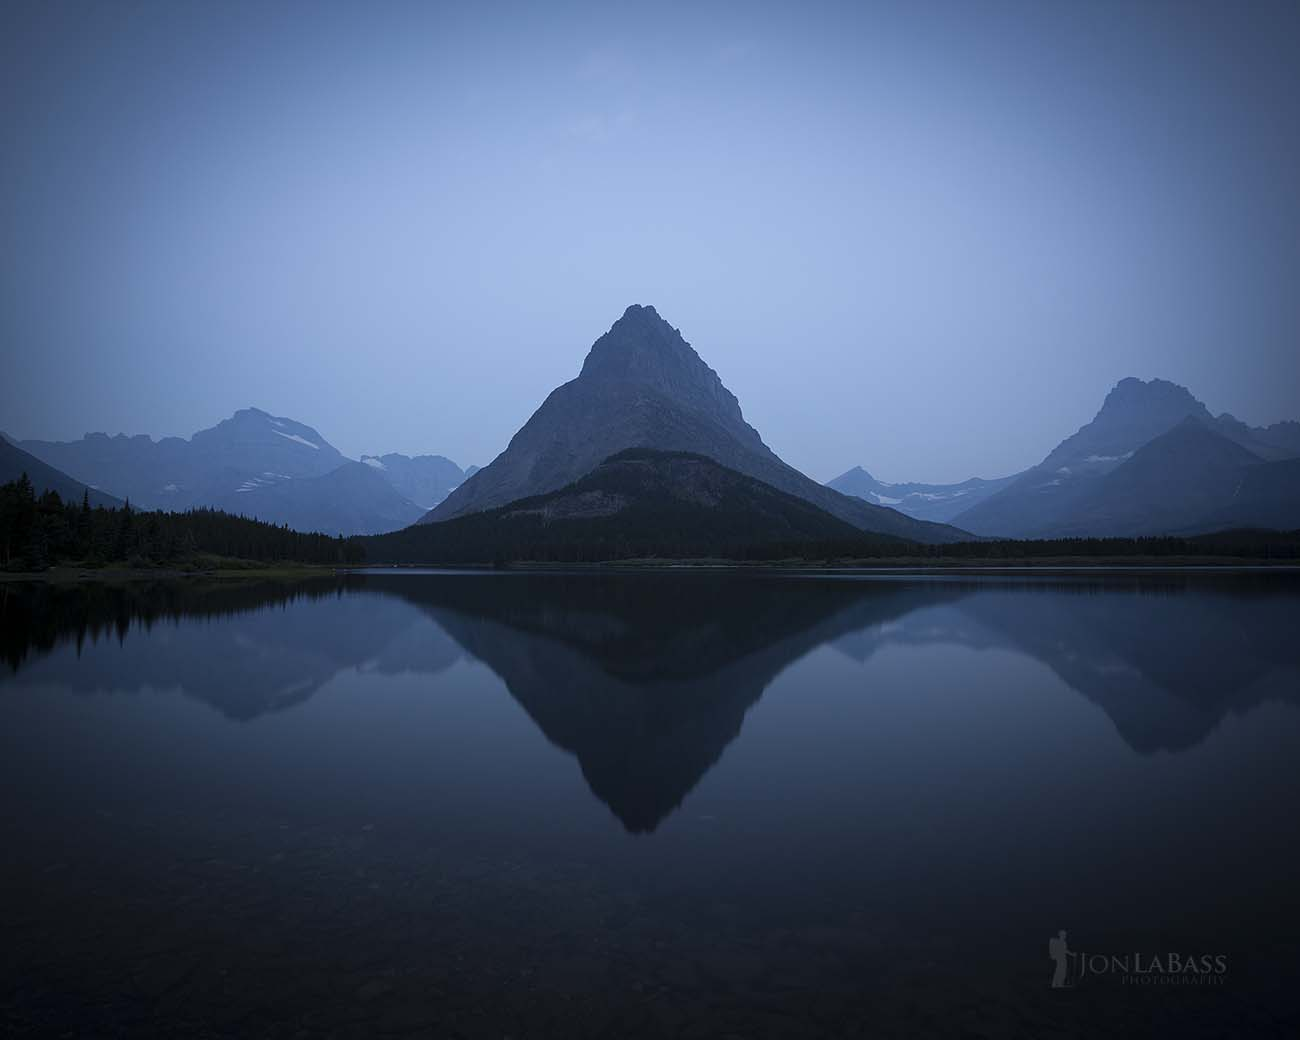 Glacier, Grinnell Point, Montana, Morning, National Parks, Reflection, Rockies, Rocky Mountains, Summer, Sunrise, Swiftcurrent Lake, United States, Water